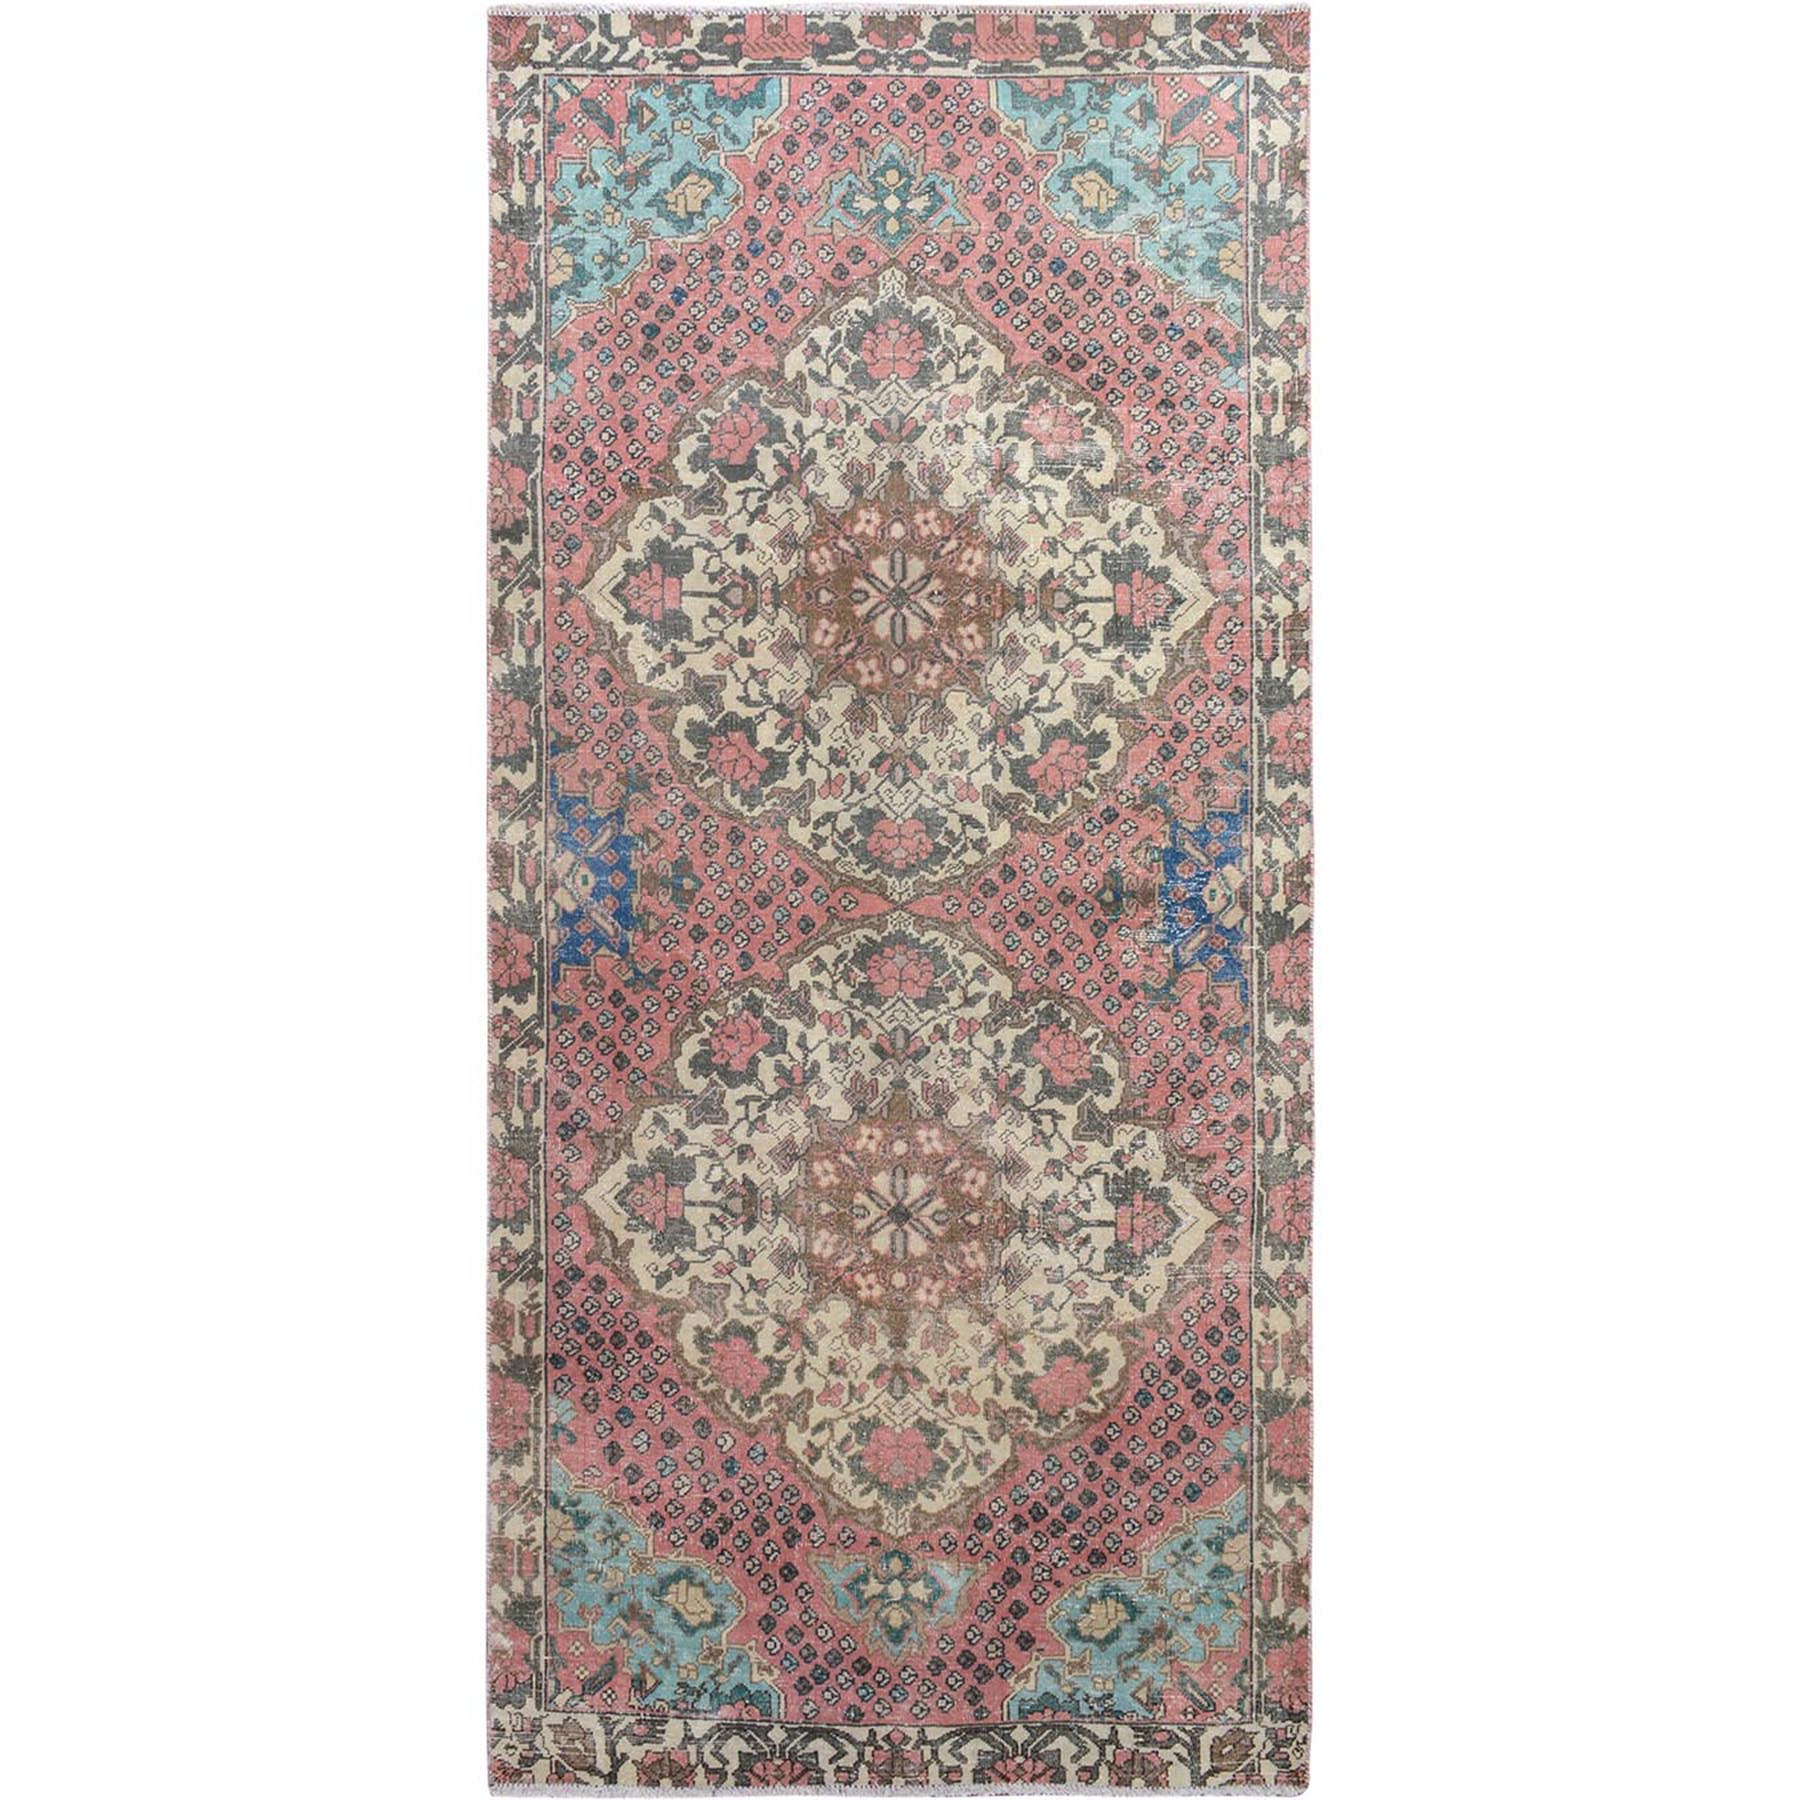 "4'5""x9' Pink Vintage and Worn Down Washed Runner Persian Antique Bakhtiari Hand Woven Oriental Rug"